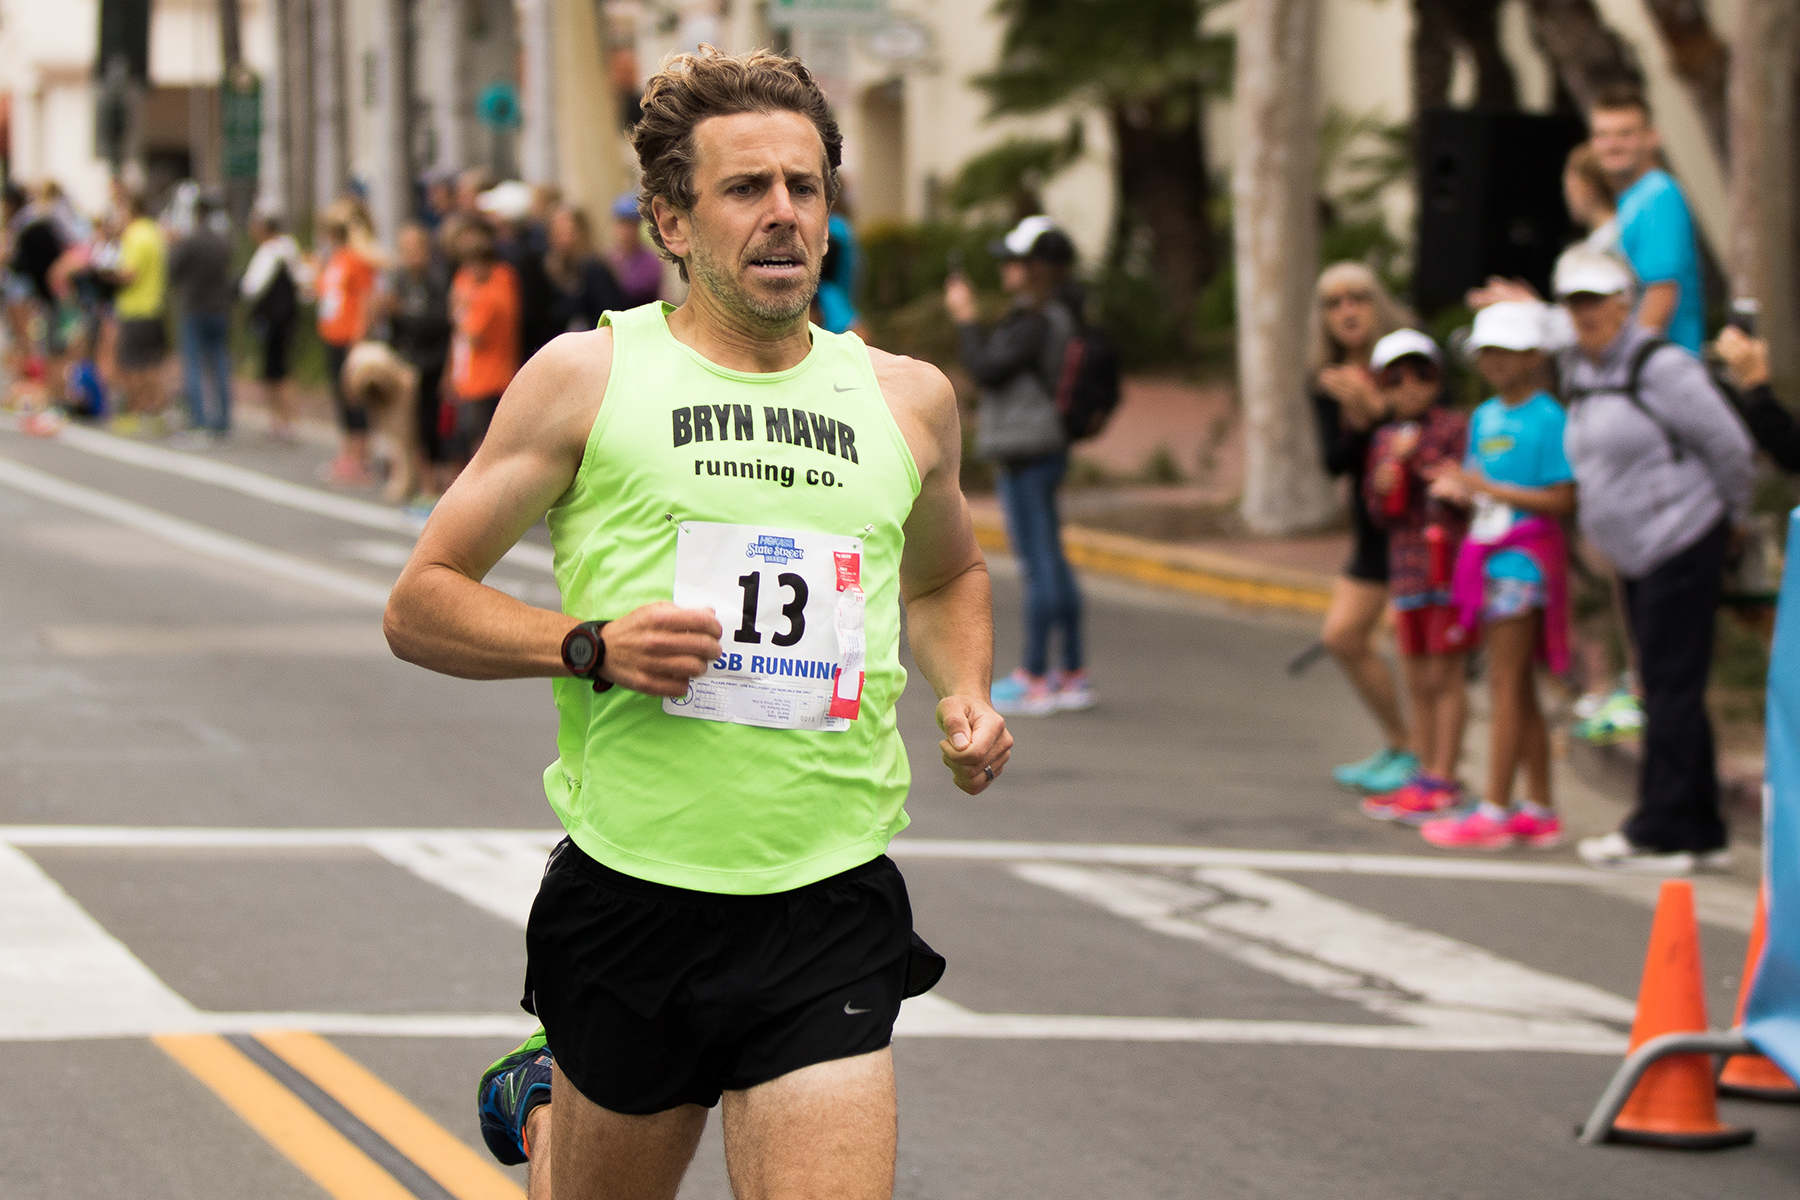 With a time of 5:17, Richard Cagley, 41, of Santa Barbara finished thirteenth in the 40-49 age group.